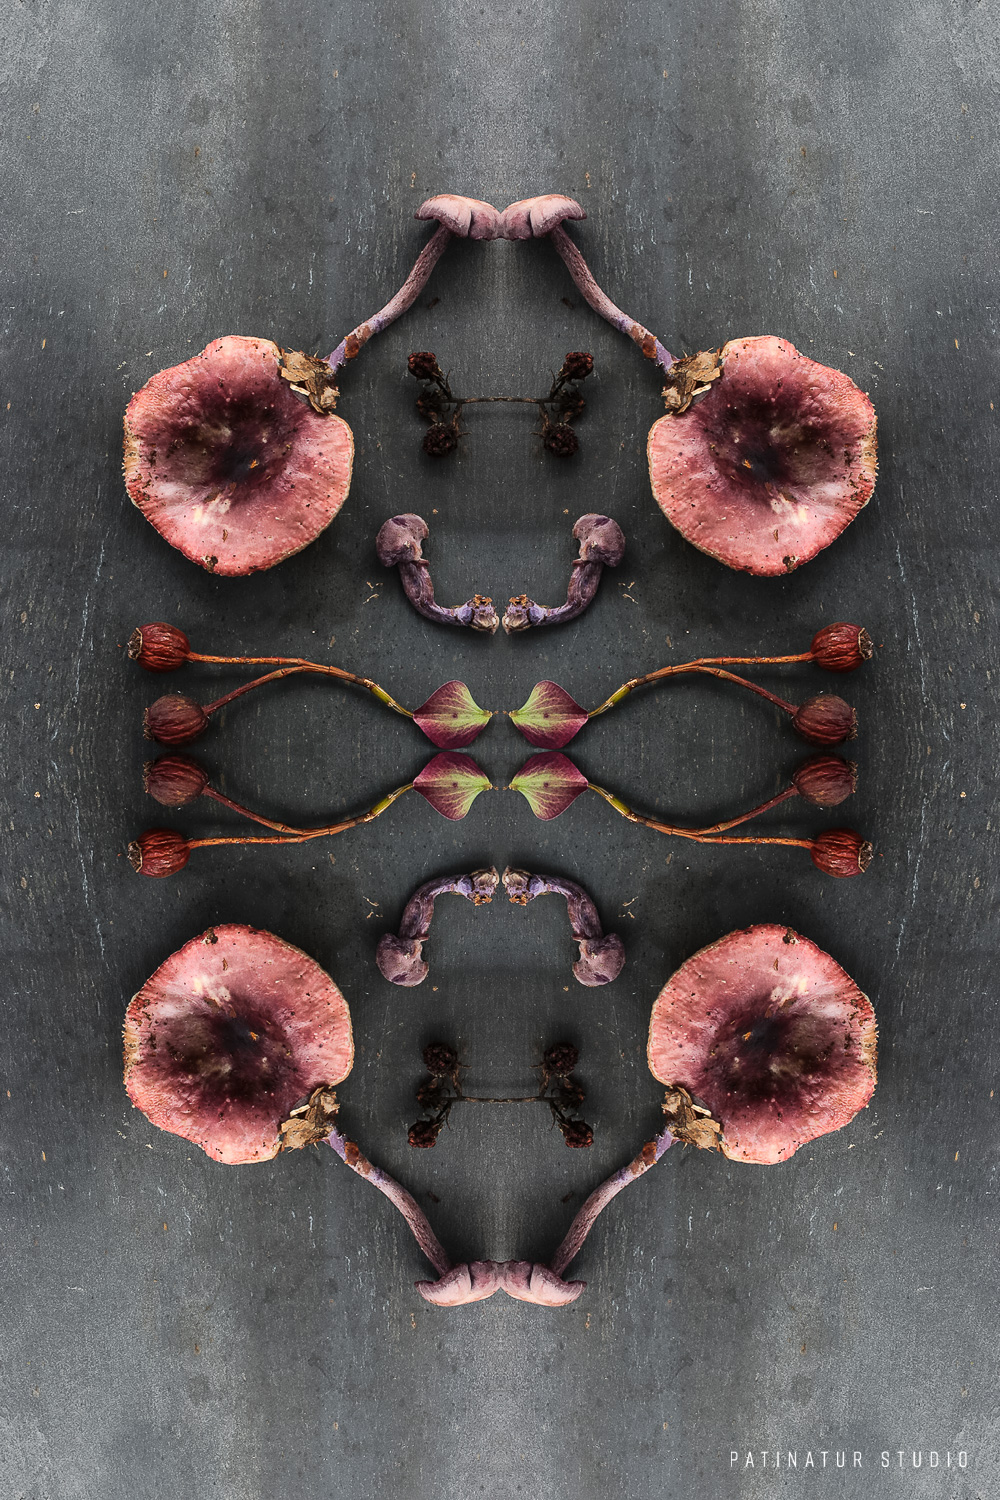 Photo art | Botanical caleidoscope in pink and purple